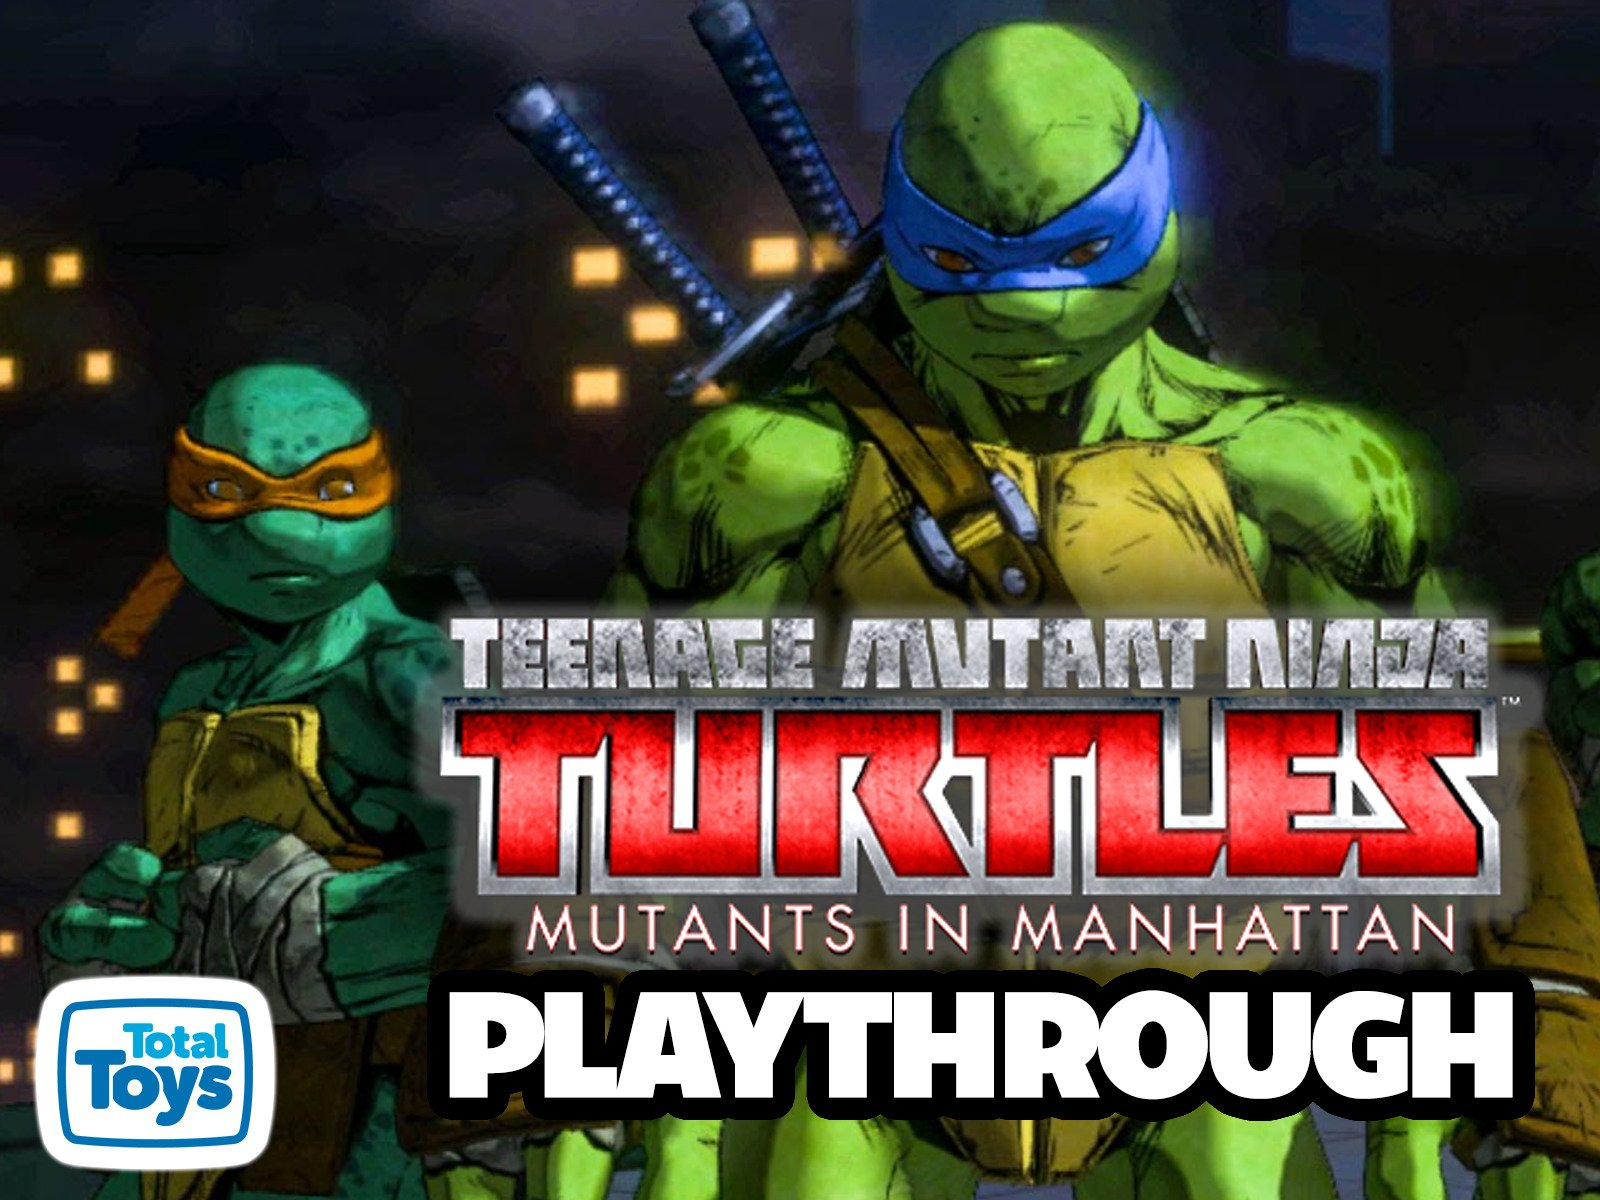 Amazon.com: Watch Clip: Teenage Mutant Ninja Turtles Mutants ...